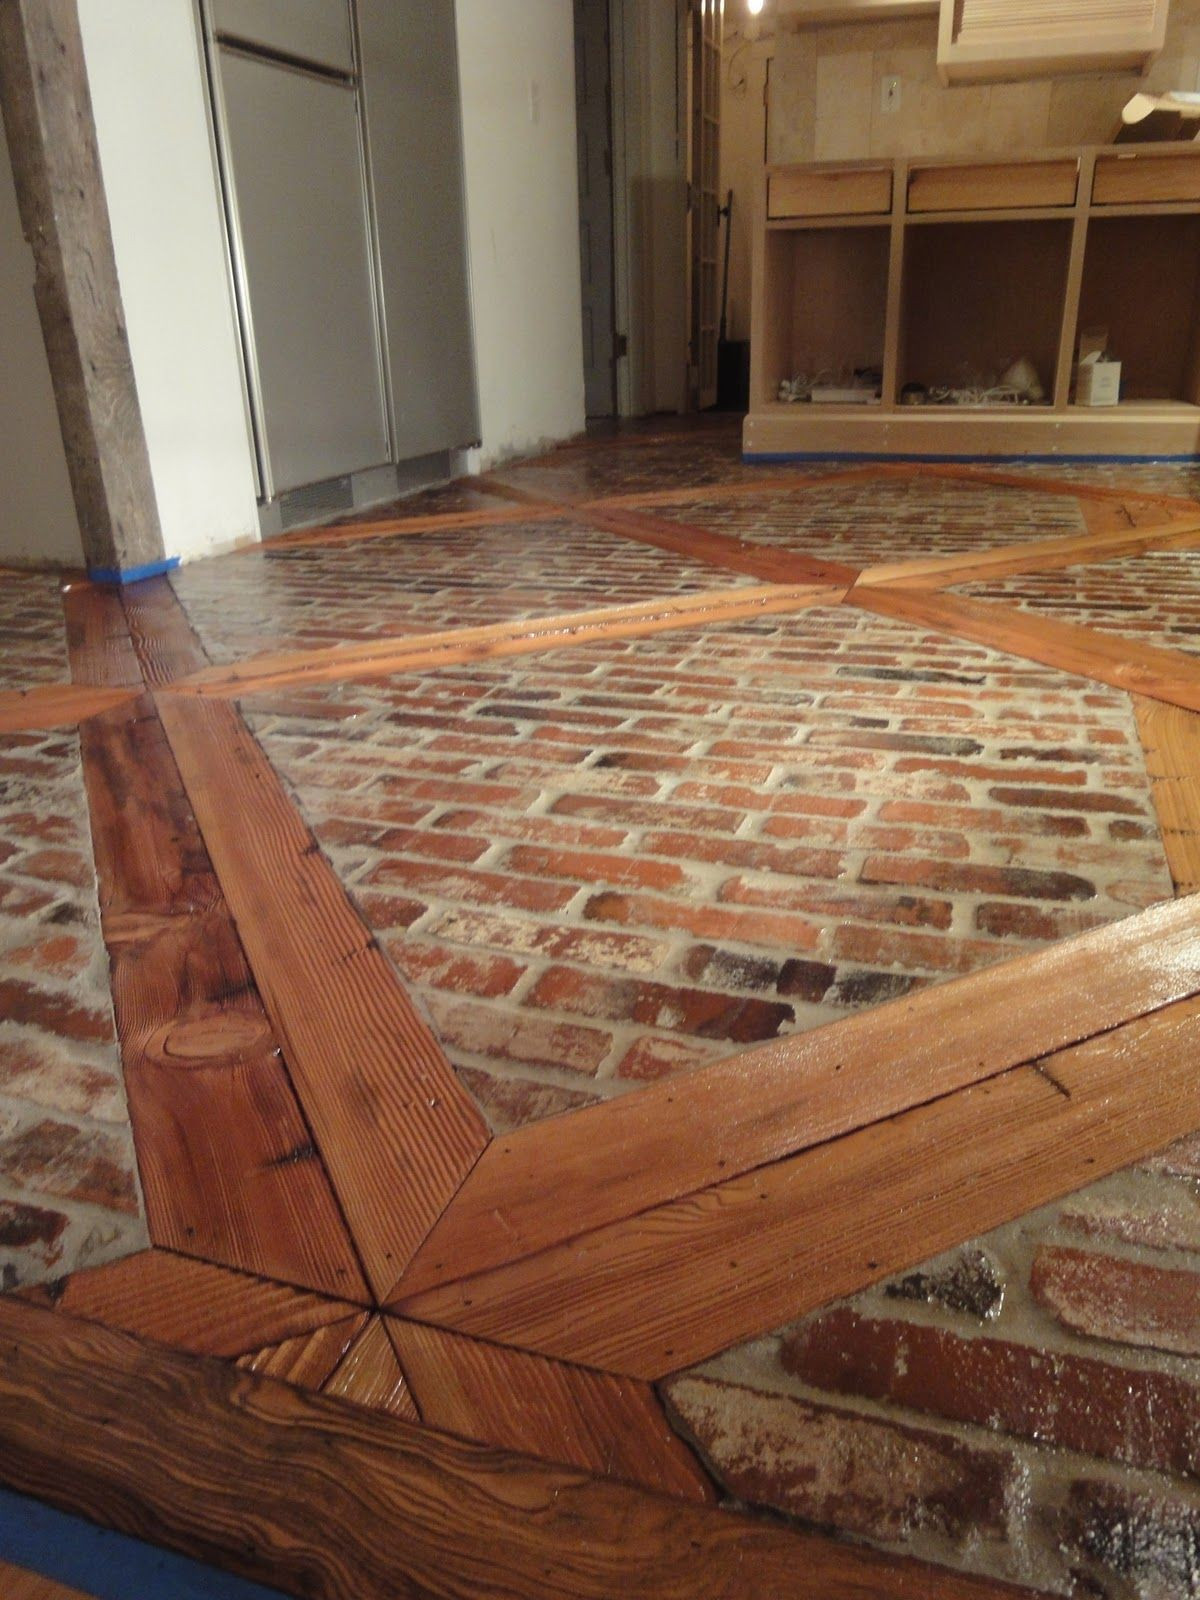 hardwood and tile flooring together of wood and tile floor new decorating an open floor plan living room intended for wood and tile floor sandblasted 2 x 4 and brick floor awesome photos step by step